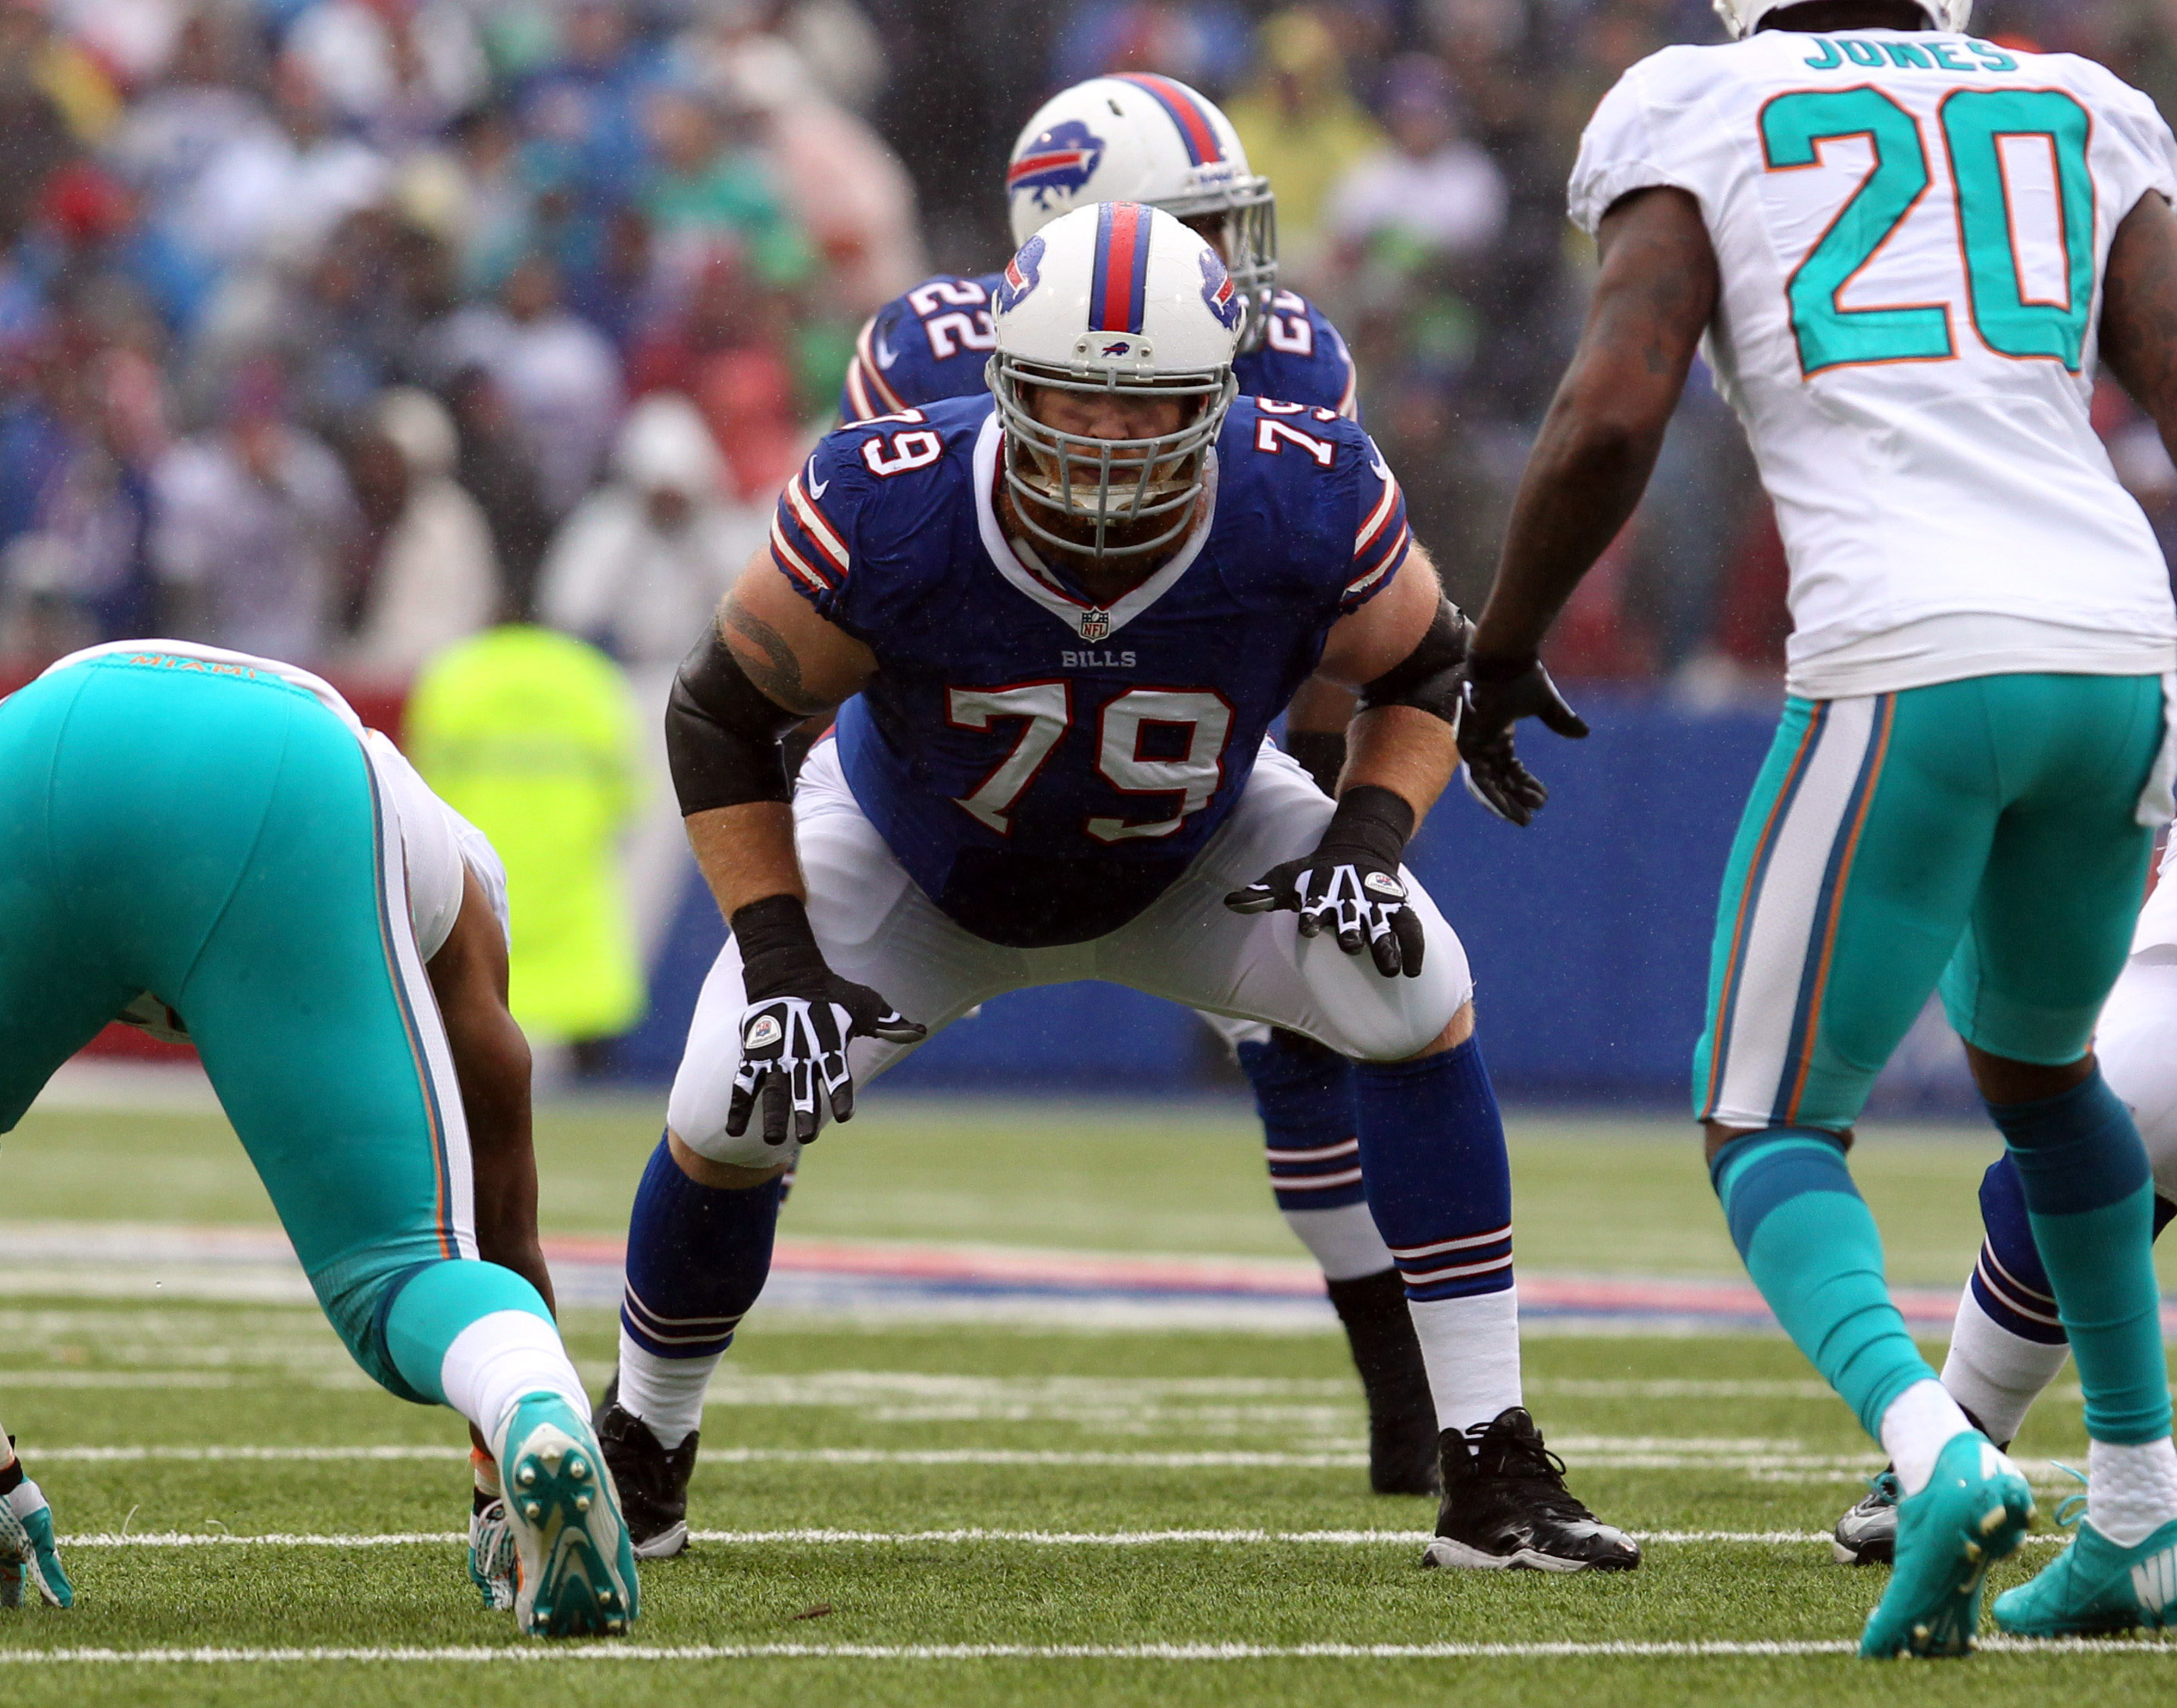 Bills vs. Dolphins 2014 picks and predictions: Experts pick a 2-0 start for Miami